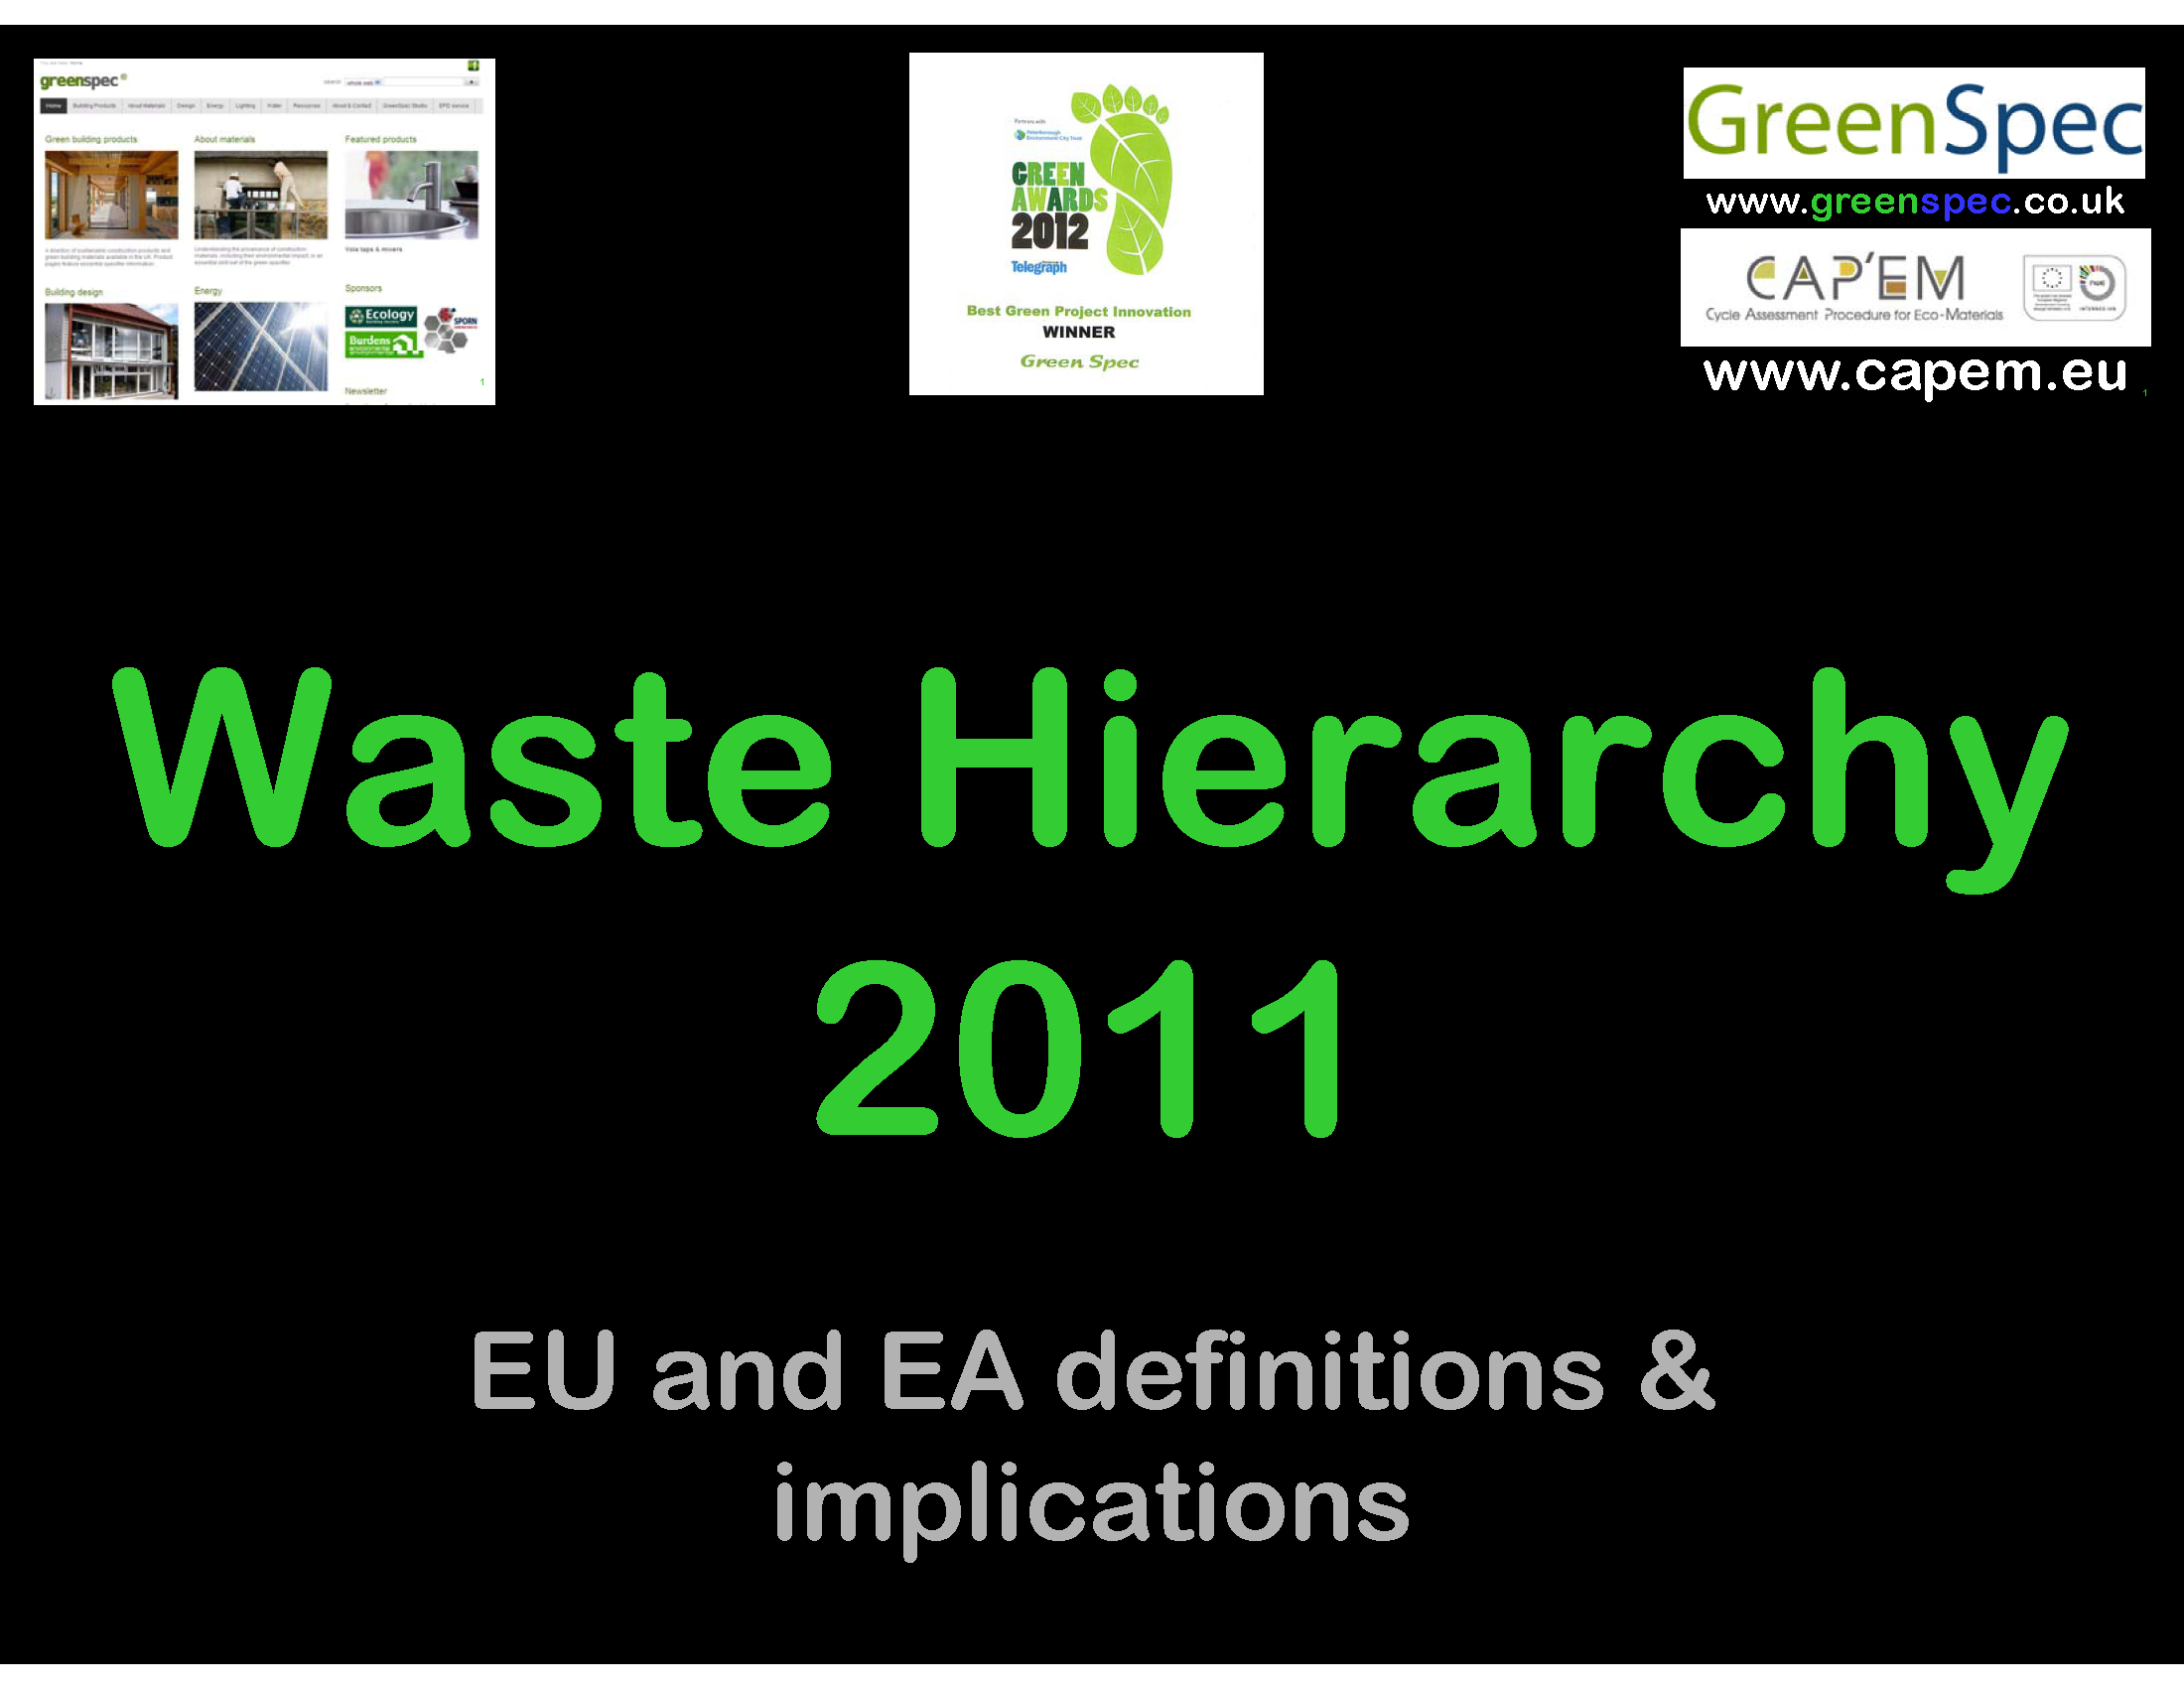 WasteHierarchy2011.png